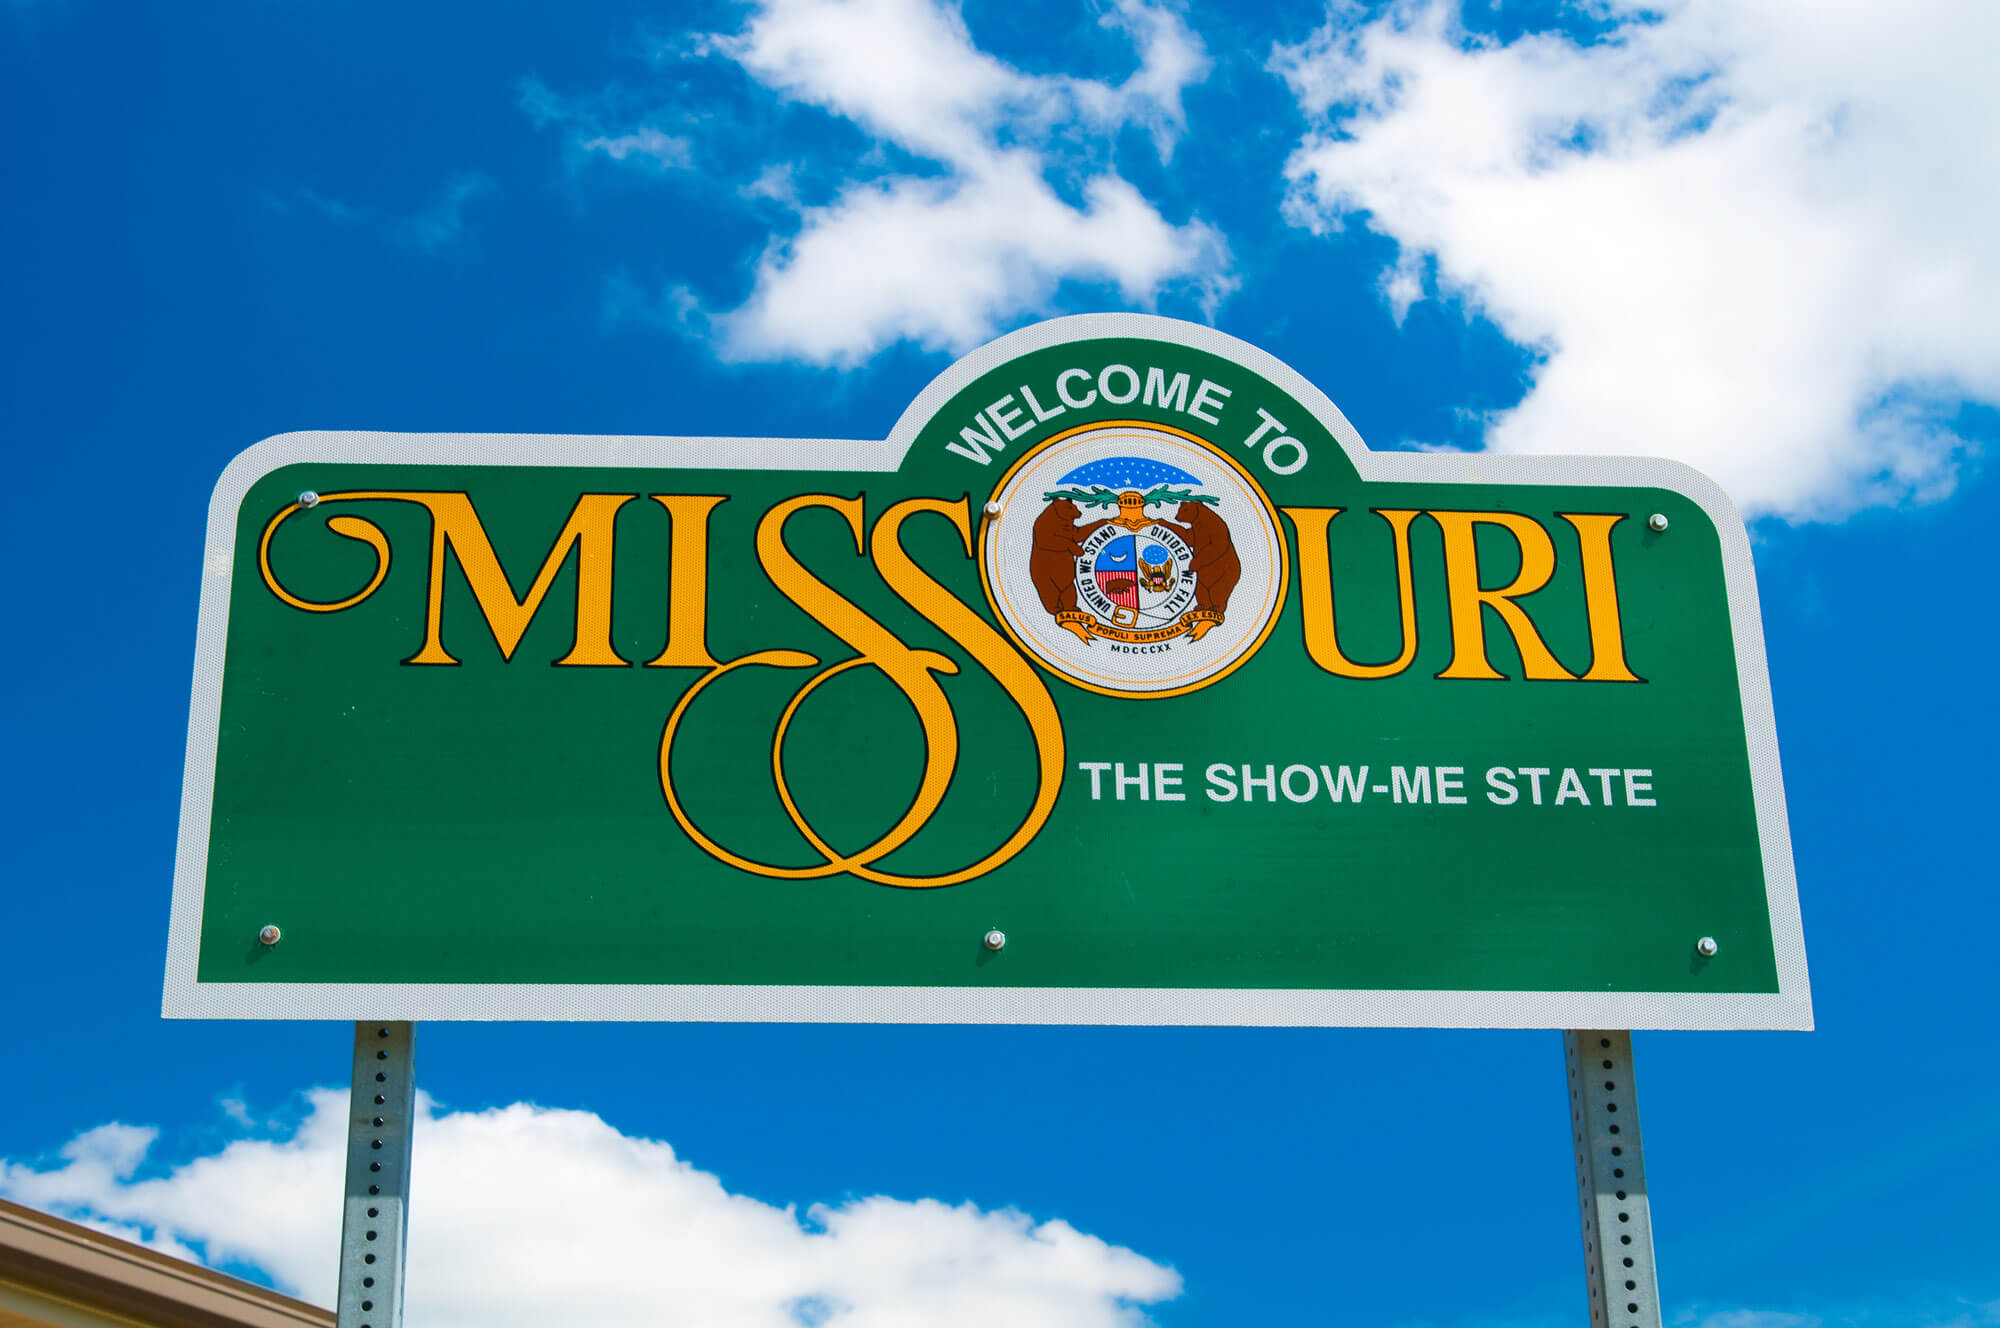 A welcome sign ushering in the new business accelerator for rural Missouri entrepreneurs